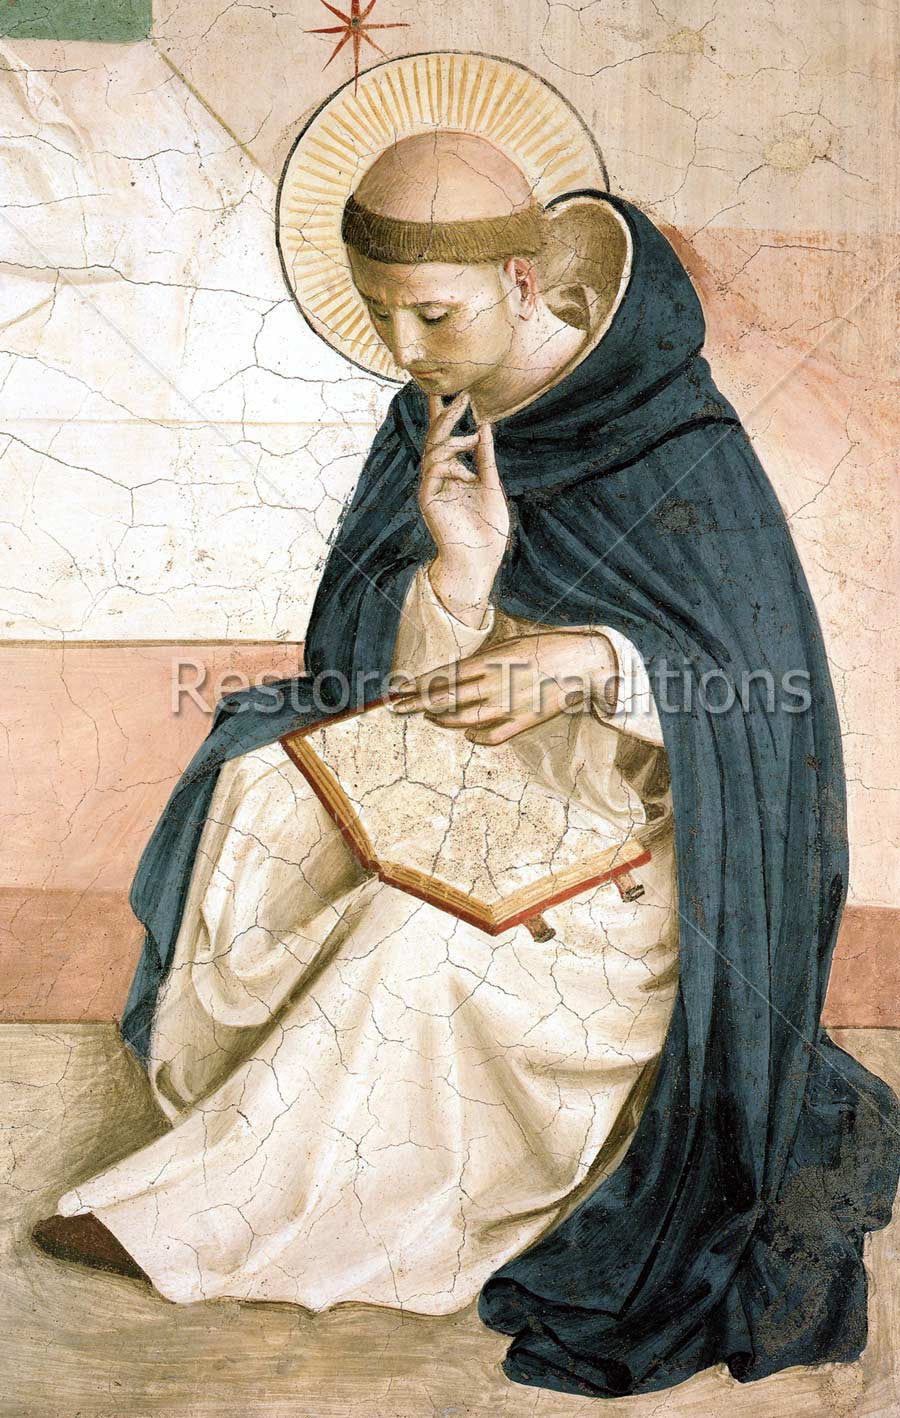 Saint Dominic reading a book